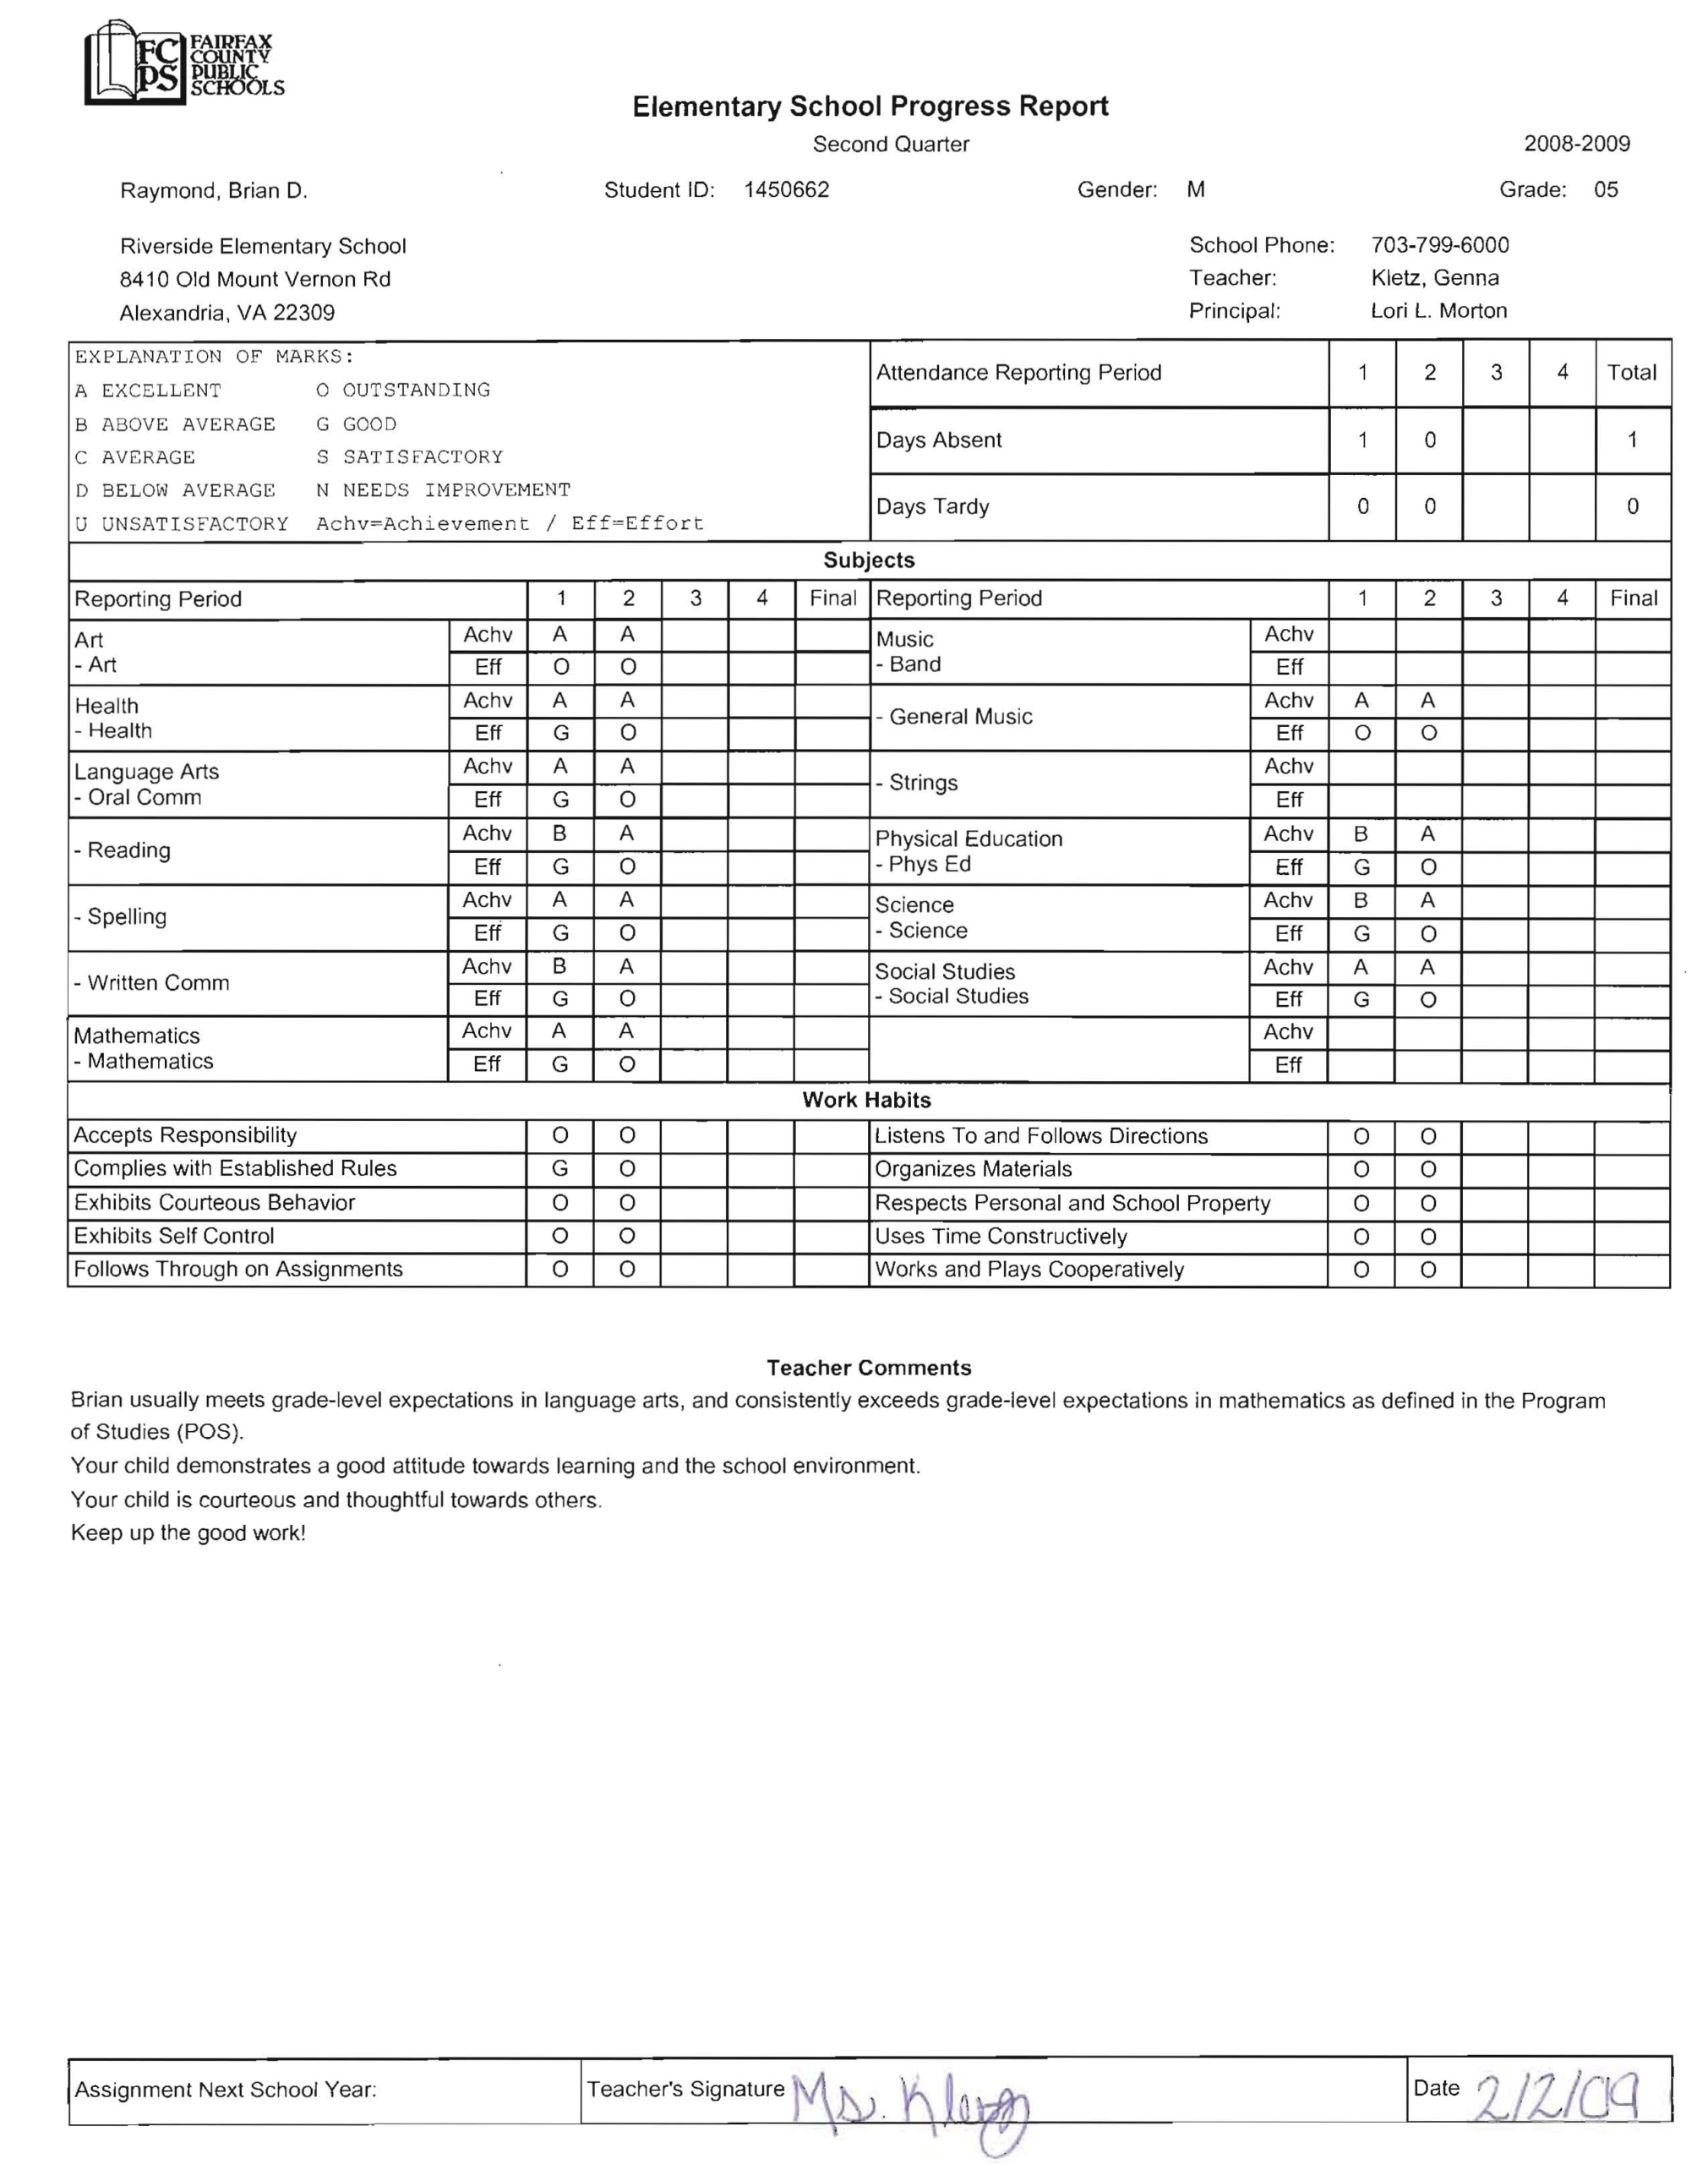 Report Card Sample ] - How To Read A Report Card English Inside Soccer Report Card Template